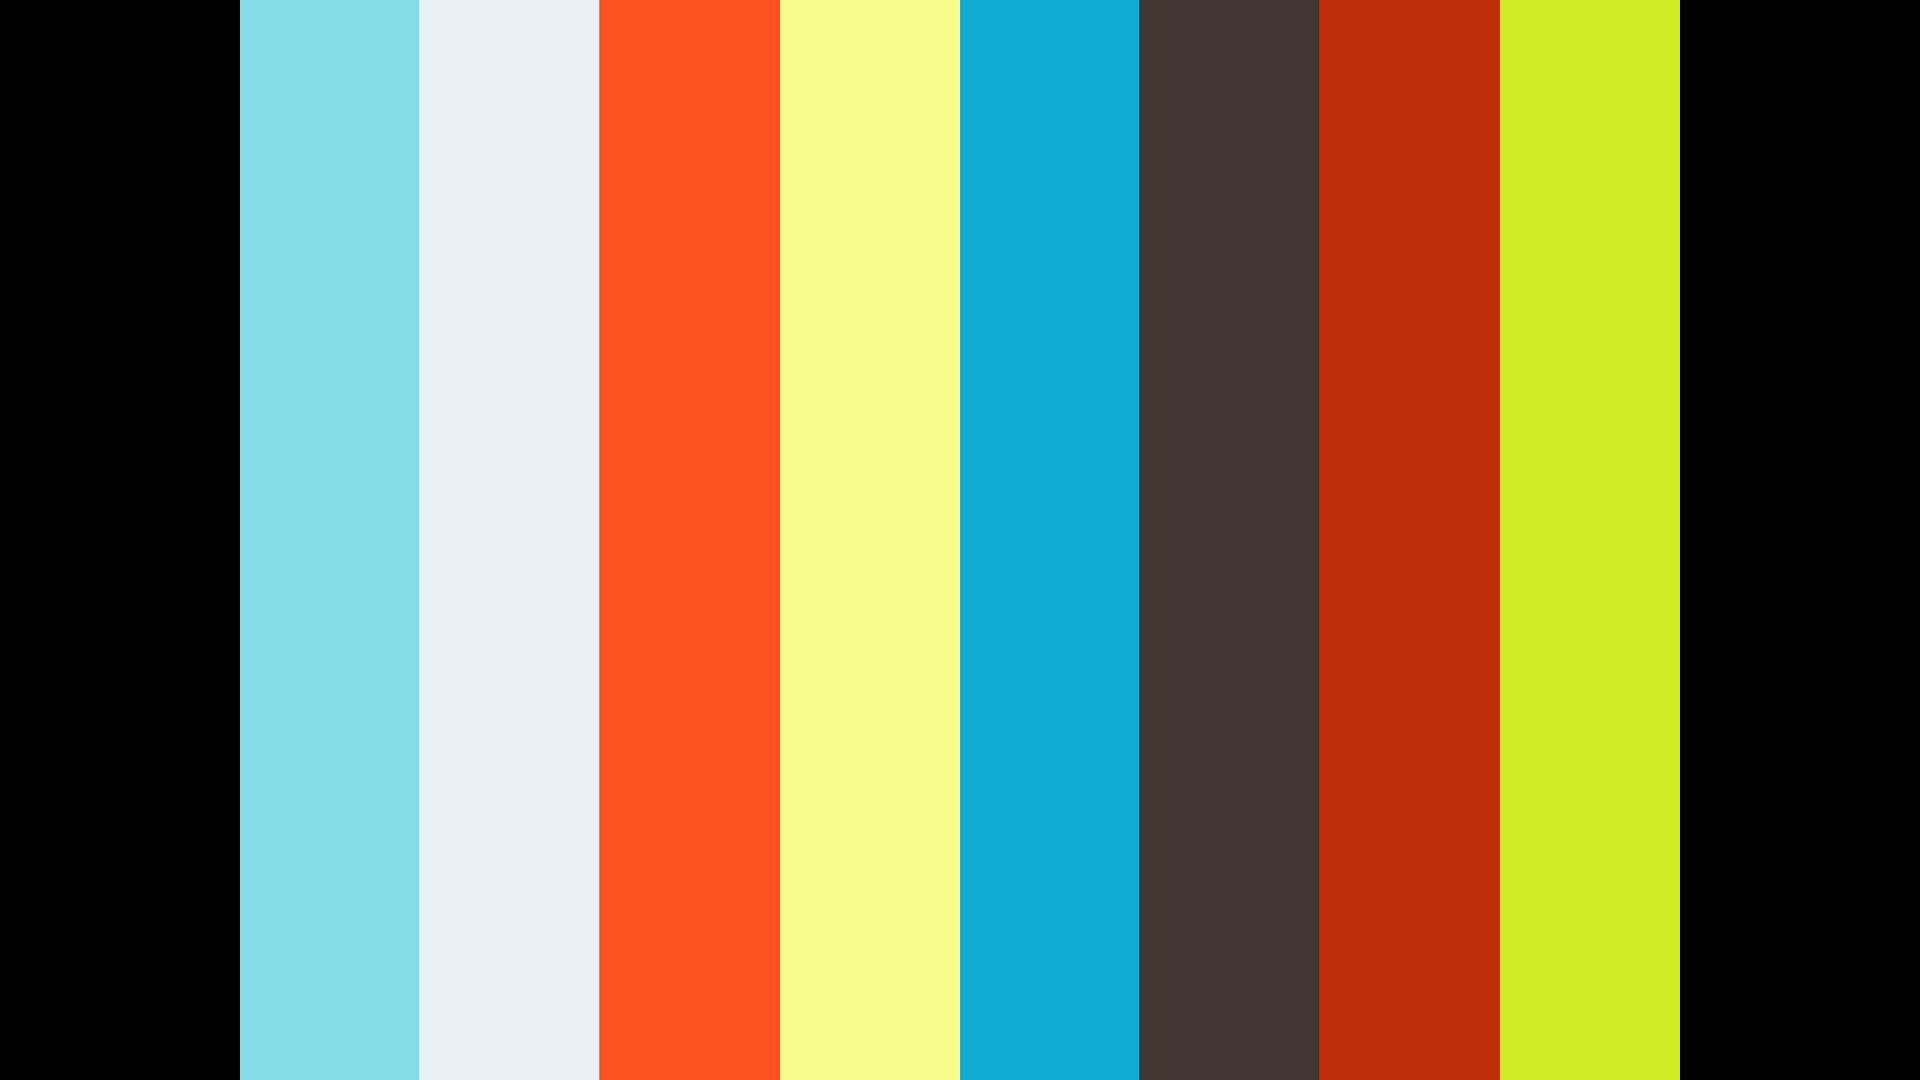 Talk by Jean-Luc Nancy